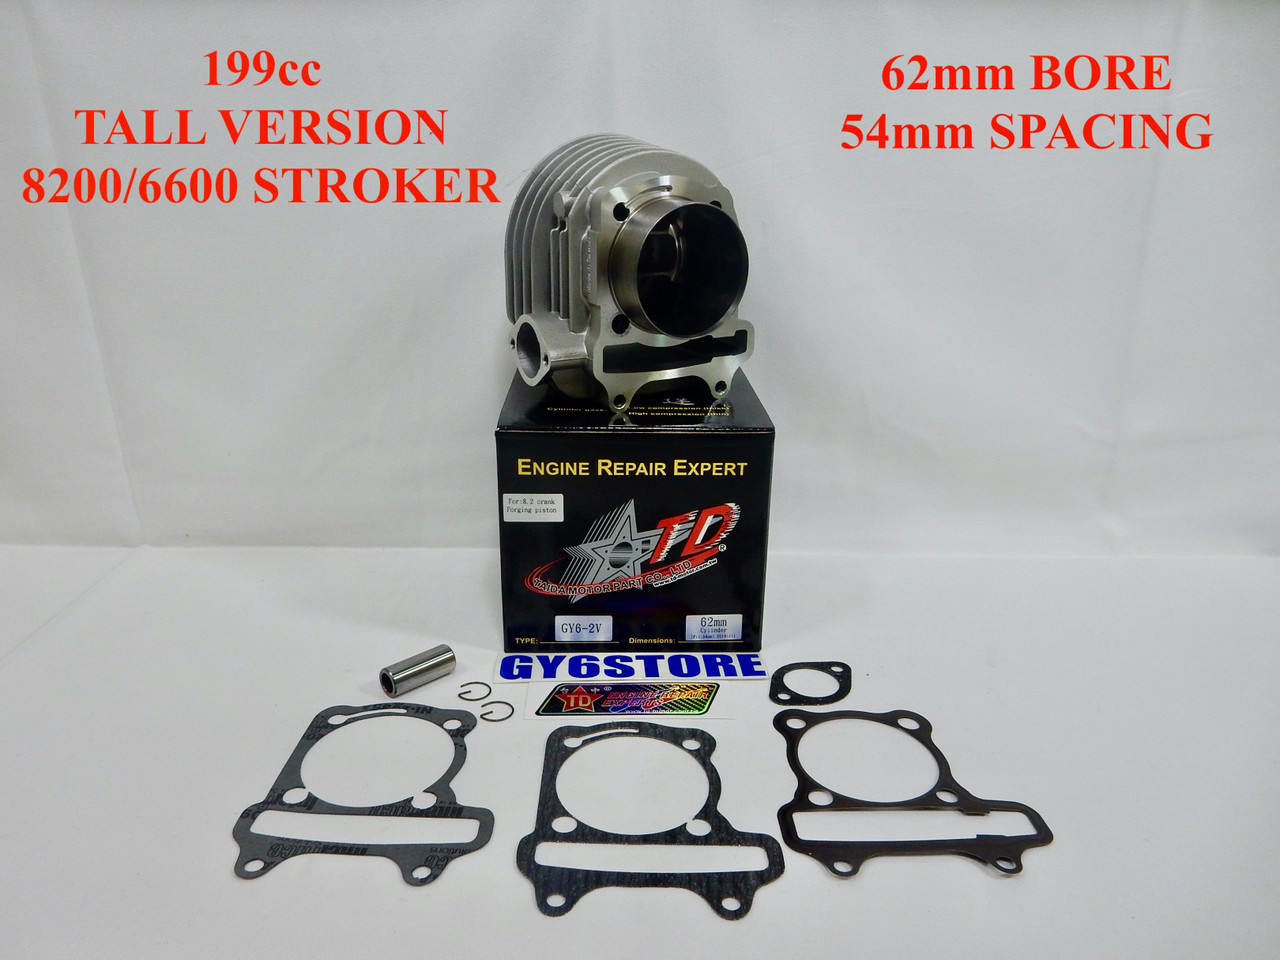 TAIDA 199cc (62mm BORE) GY6 CYLINDER SET (54mm SPACING) TALL *8200/6600 STROKER* FORGED FLAT PISTON